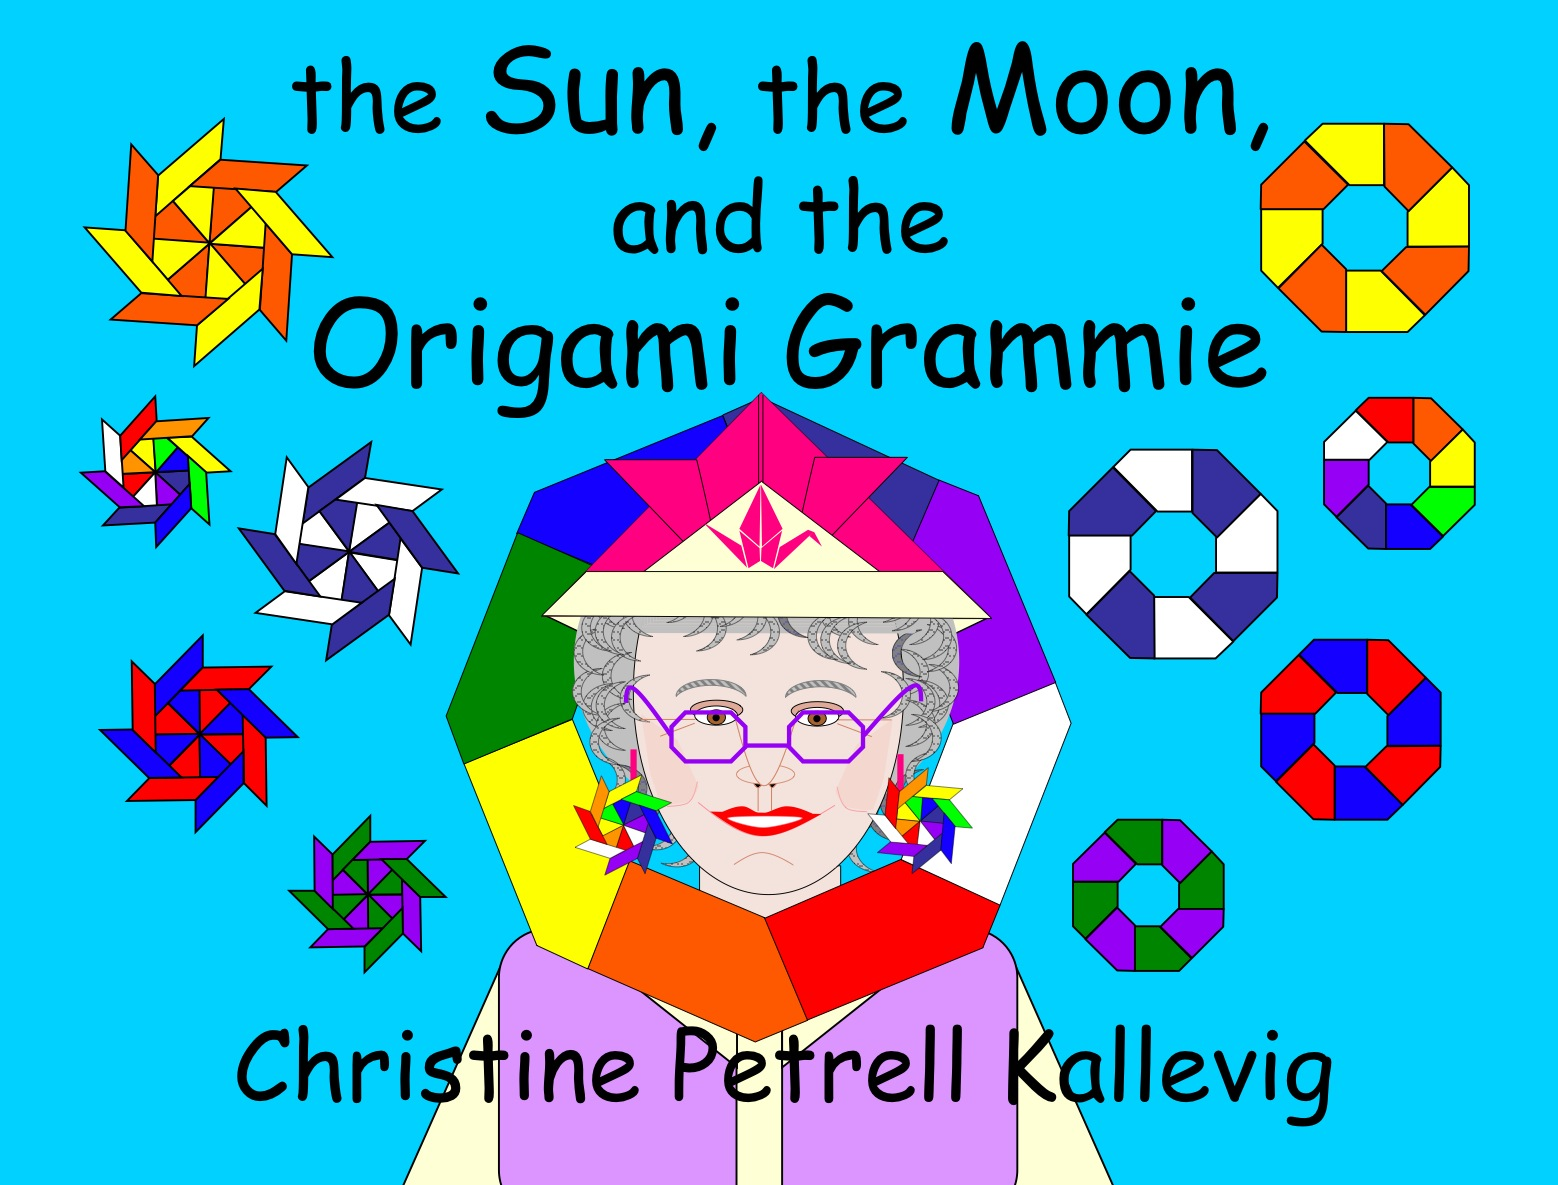 The Sun, The Moon, and the Origami Grammie by Christine Kallevig